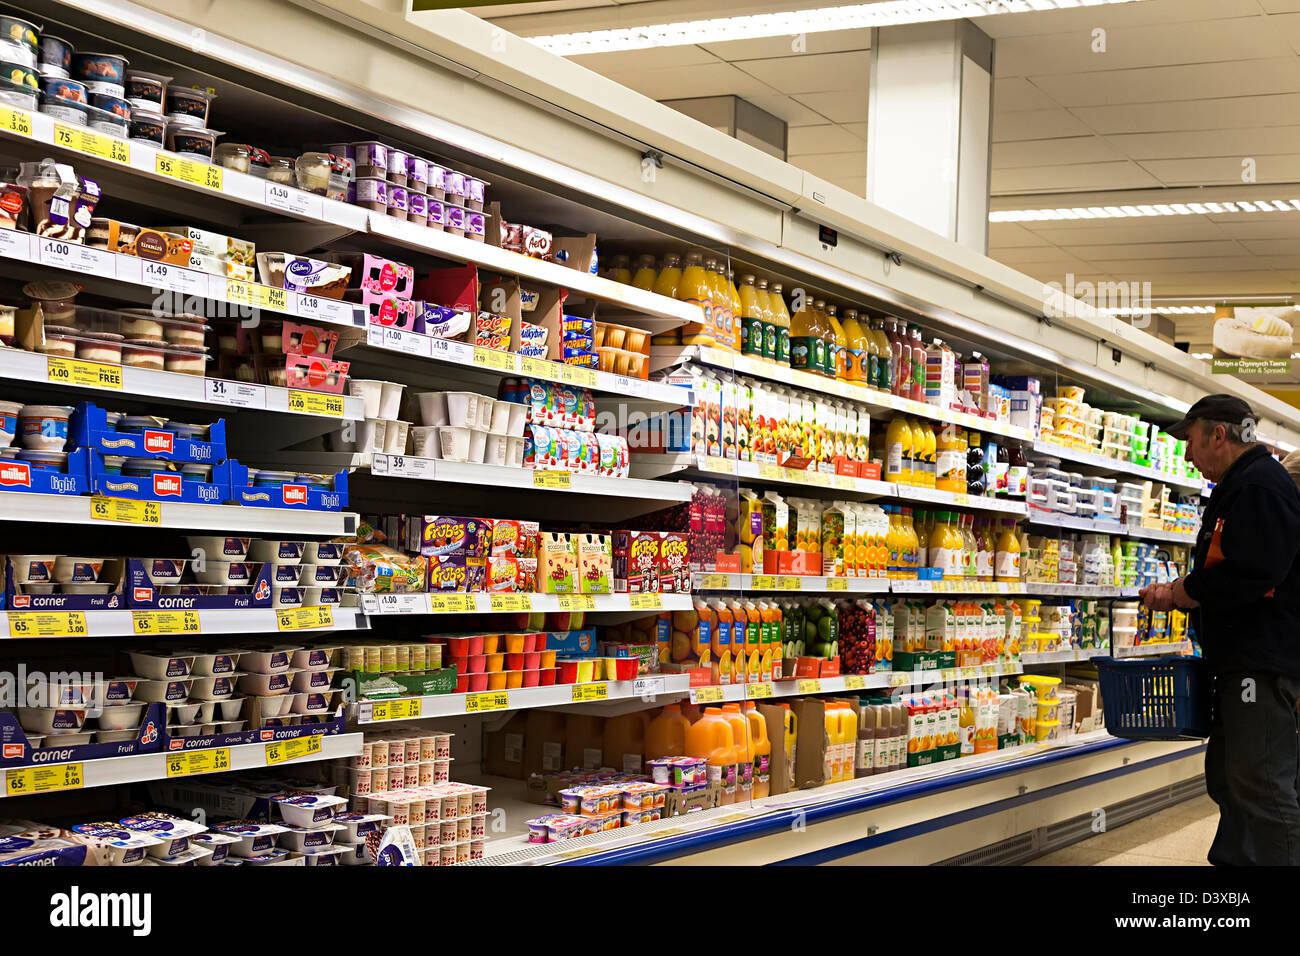 Man shopping in Tesco in front of cooled shelves of orange juice and dairy products, UK - Stock Image